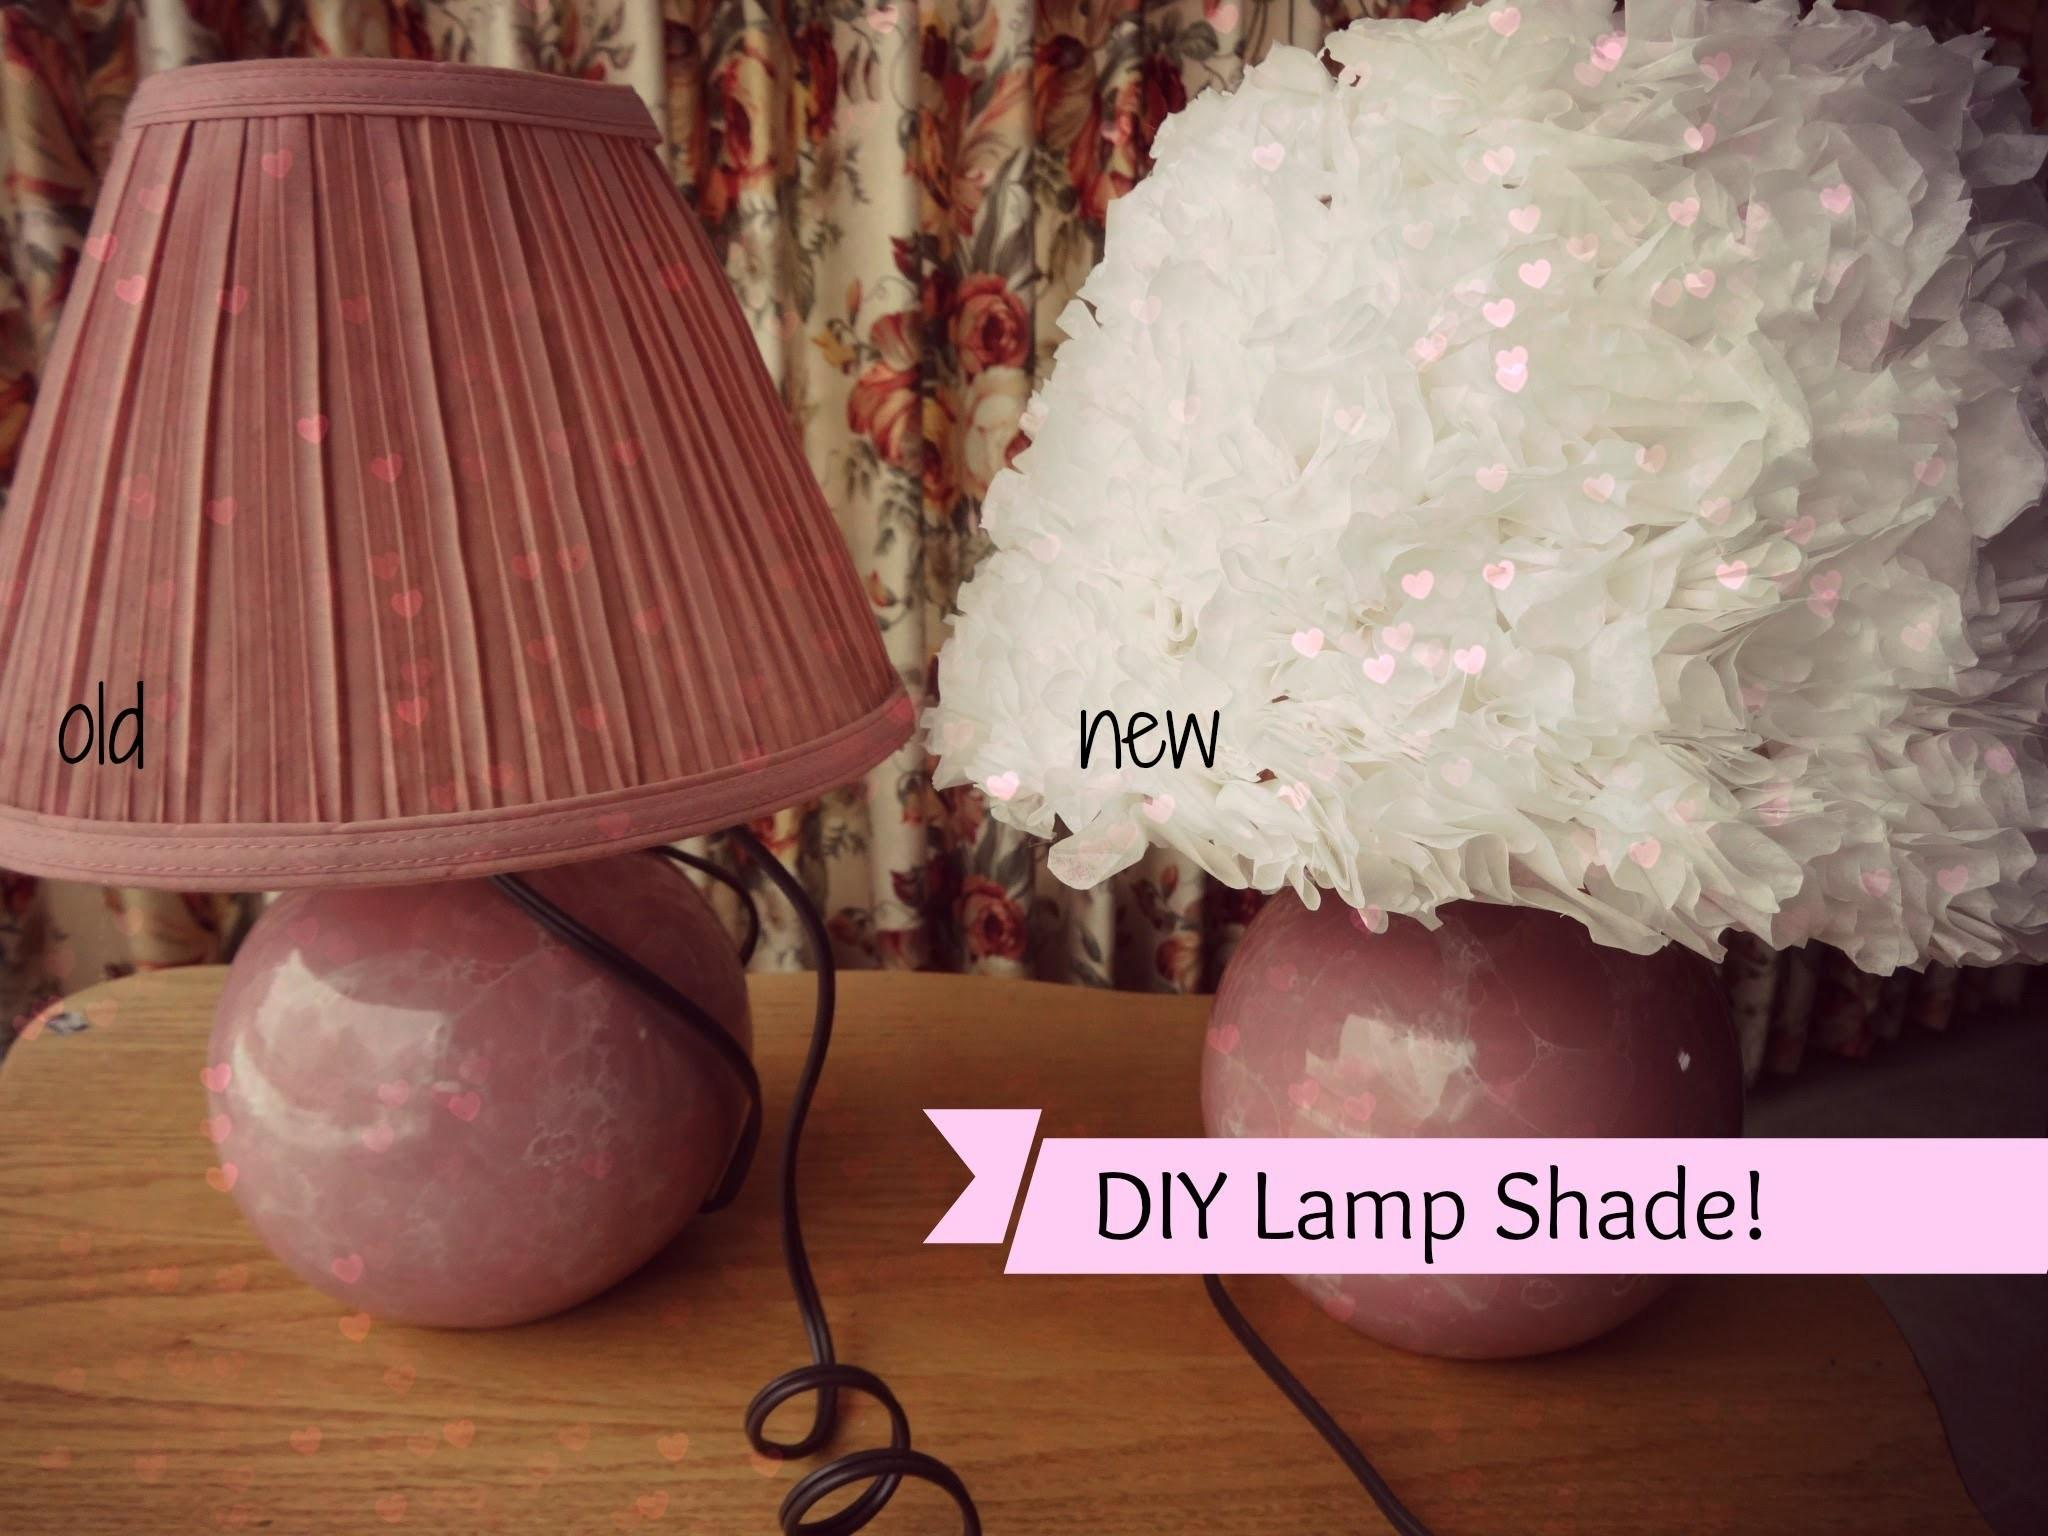 Try Diy Coffee Filter Lamp Shade